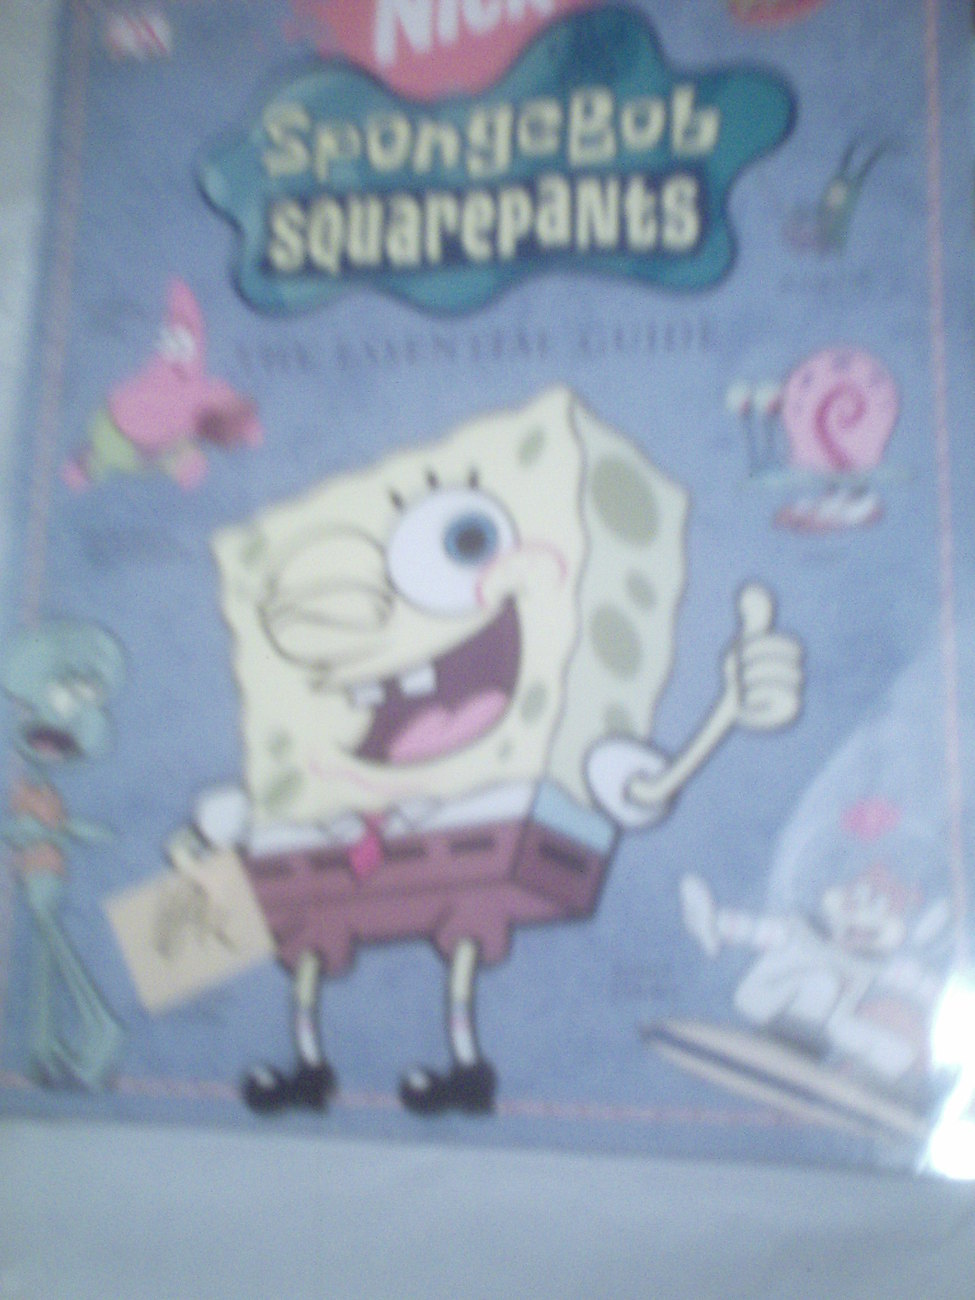 Nickelodeon Magazine  SpongeBob Square pants The Essential Guide 2005